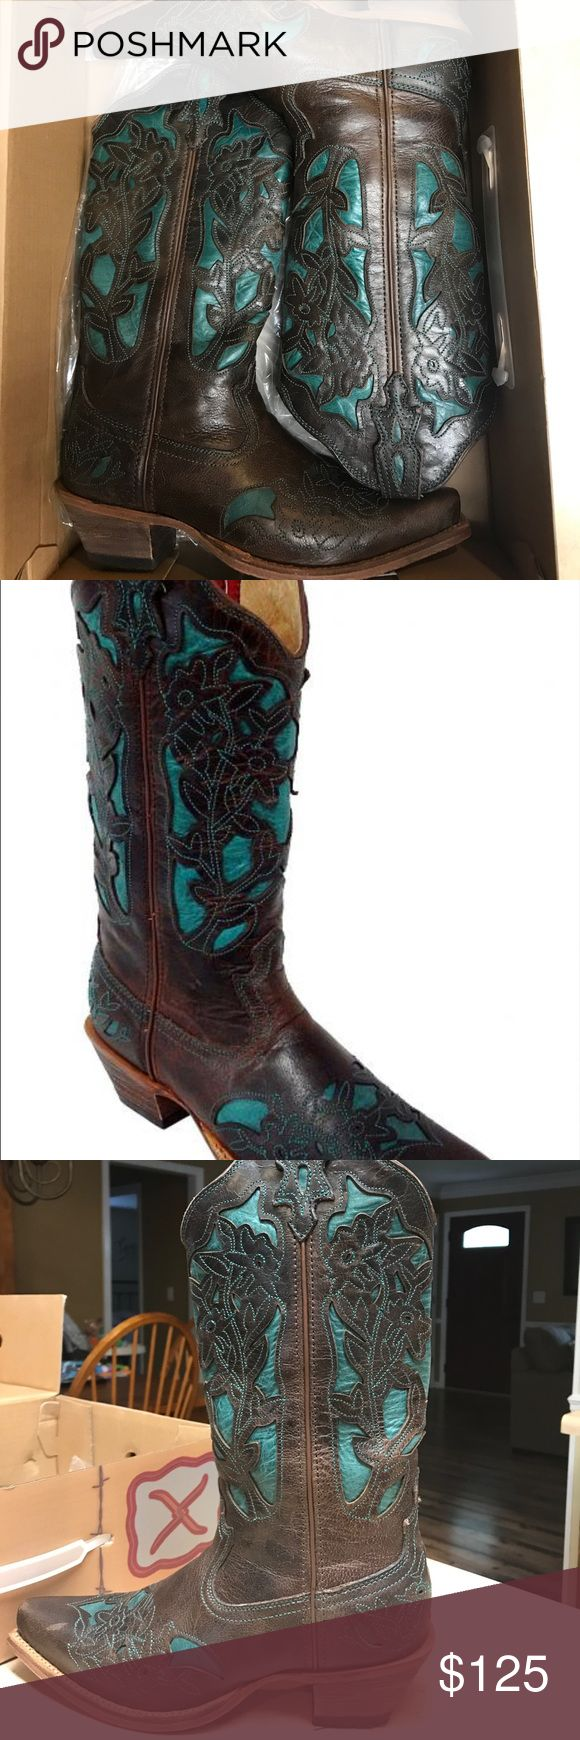 "***Price Drop!*** Twisted X ""Steppin' Out"" Boots Twisted X ""Steppin' Out"" cowboy boots. Super cute and comfortable; just don't wear them enough. Worn twice. Retail is $175. Brand runs a little big on me; usually wear 7.5-8 but these are 7s Twisted X Shoes"